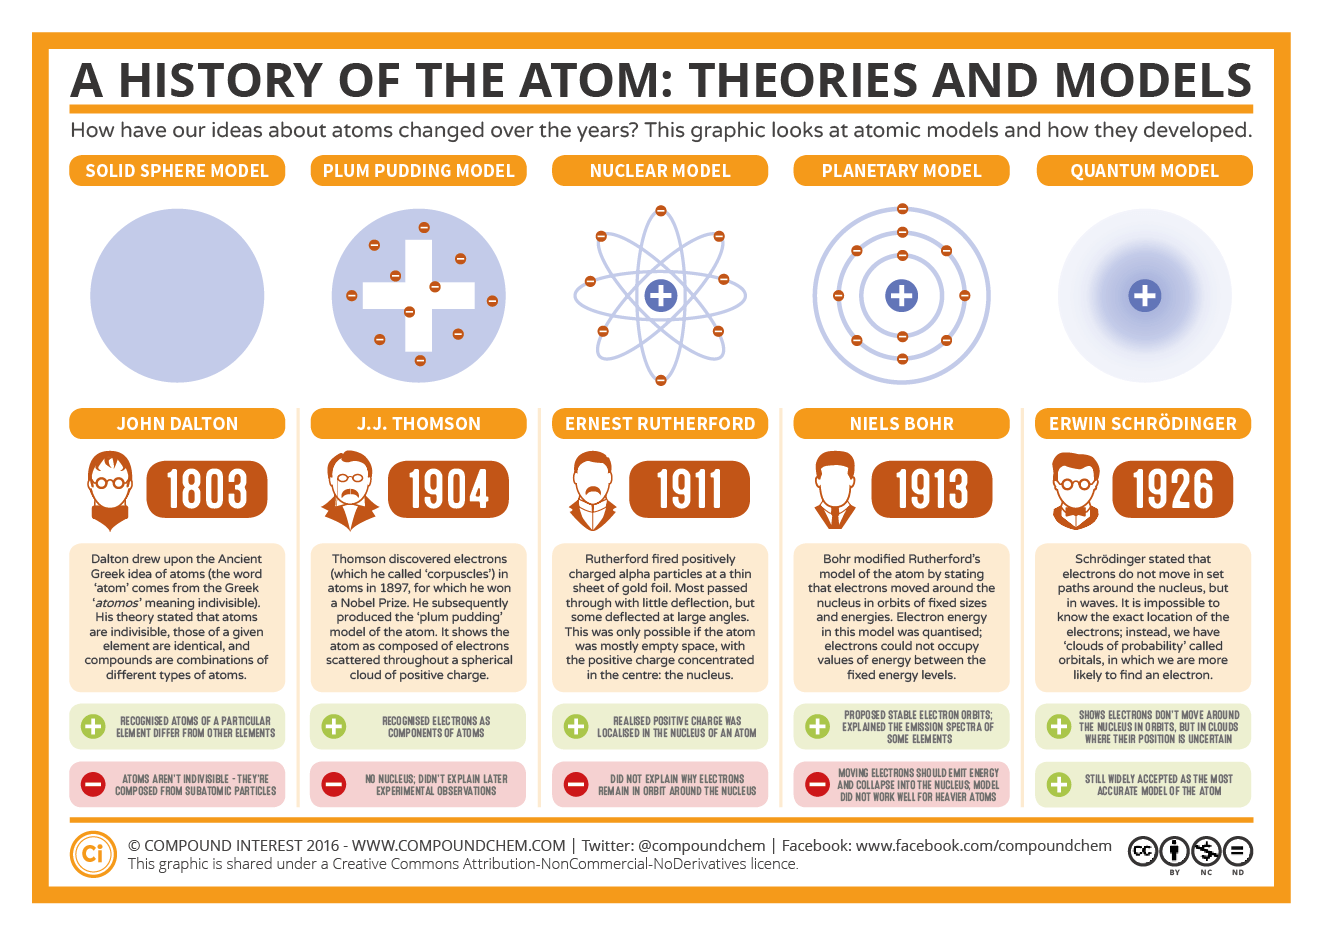 Worksheet Evolution Of The Atom Timeline compound interest the history of atom theories and models models